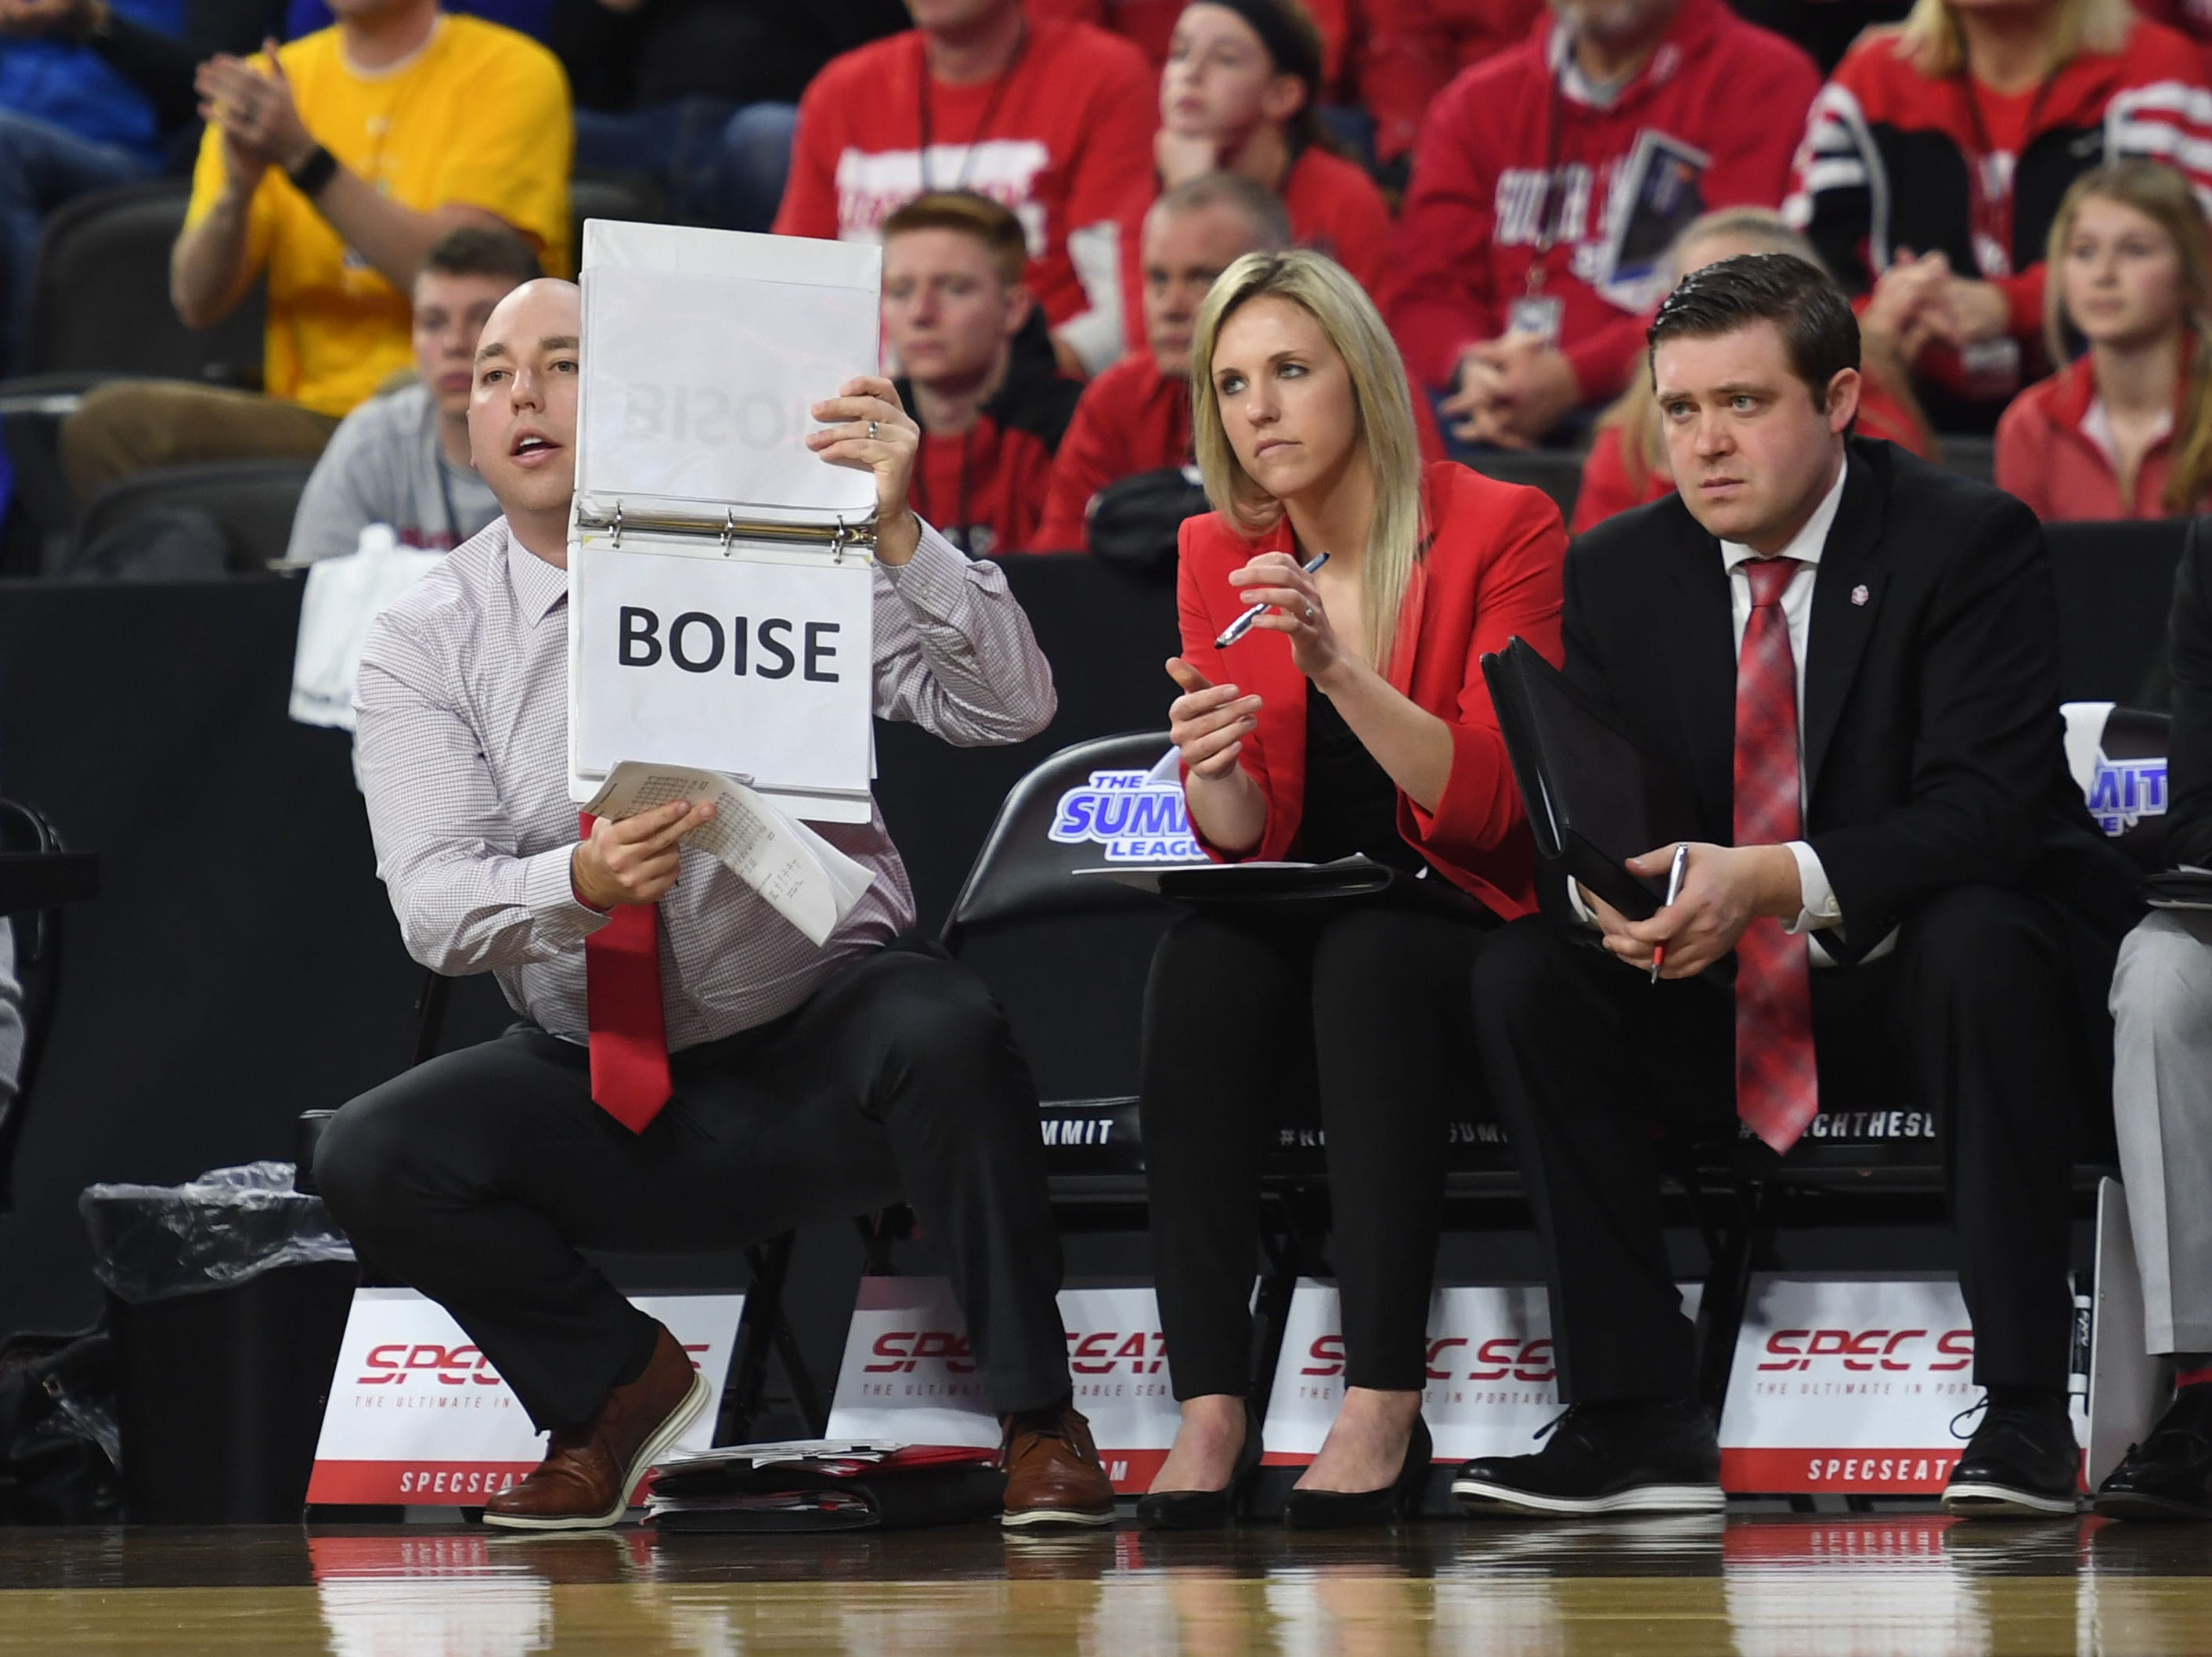 USD's sideline during the game against SDSU Tuesday, March 12, in the Summit League women's championship at the Denny Sanford Premier Center in Sioux Falls.